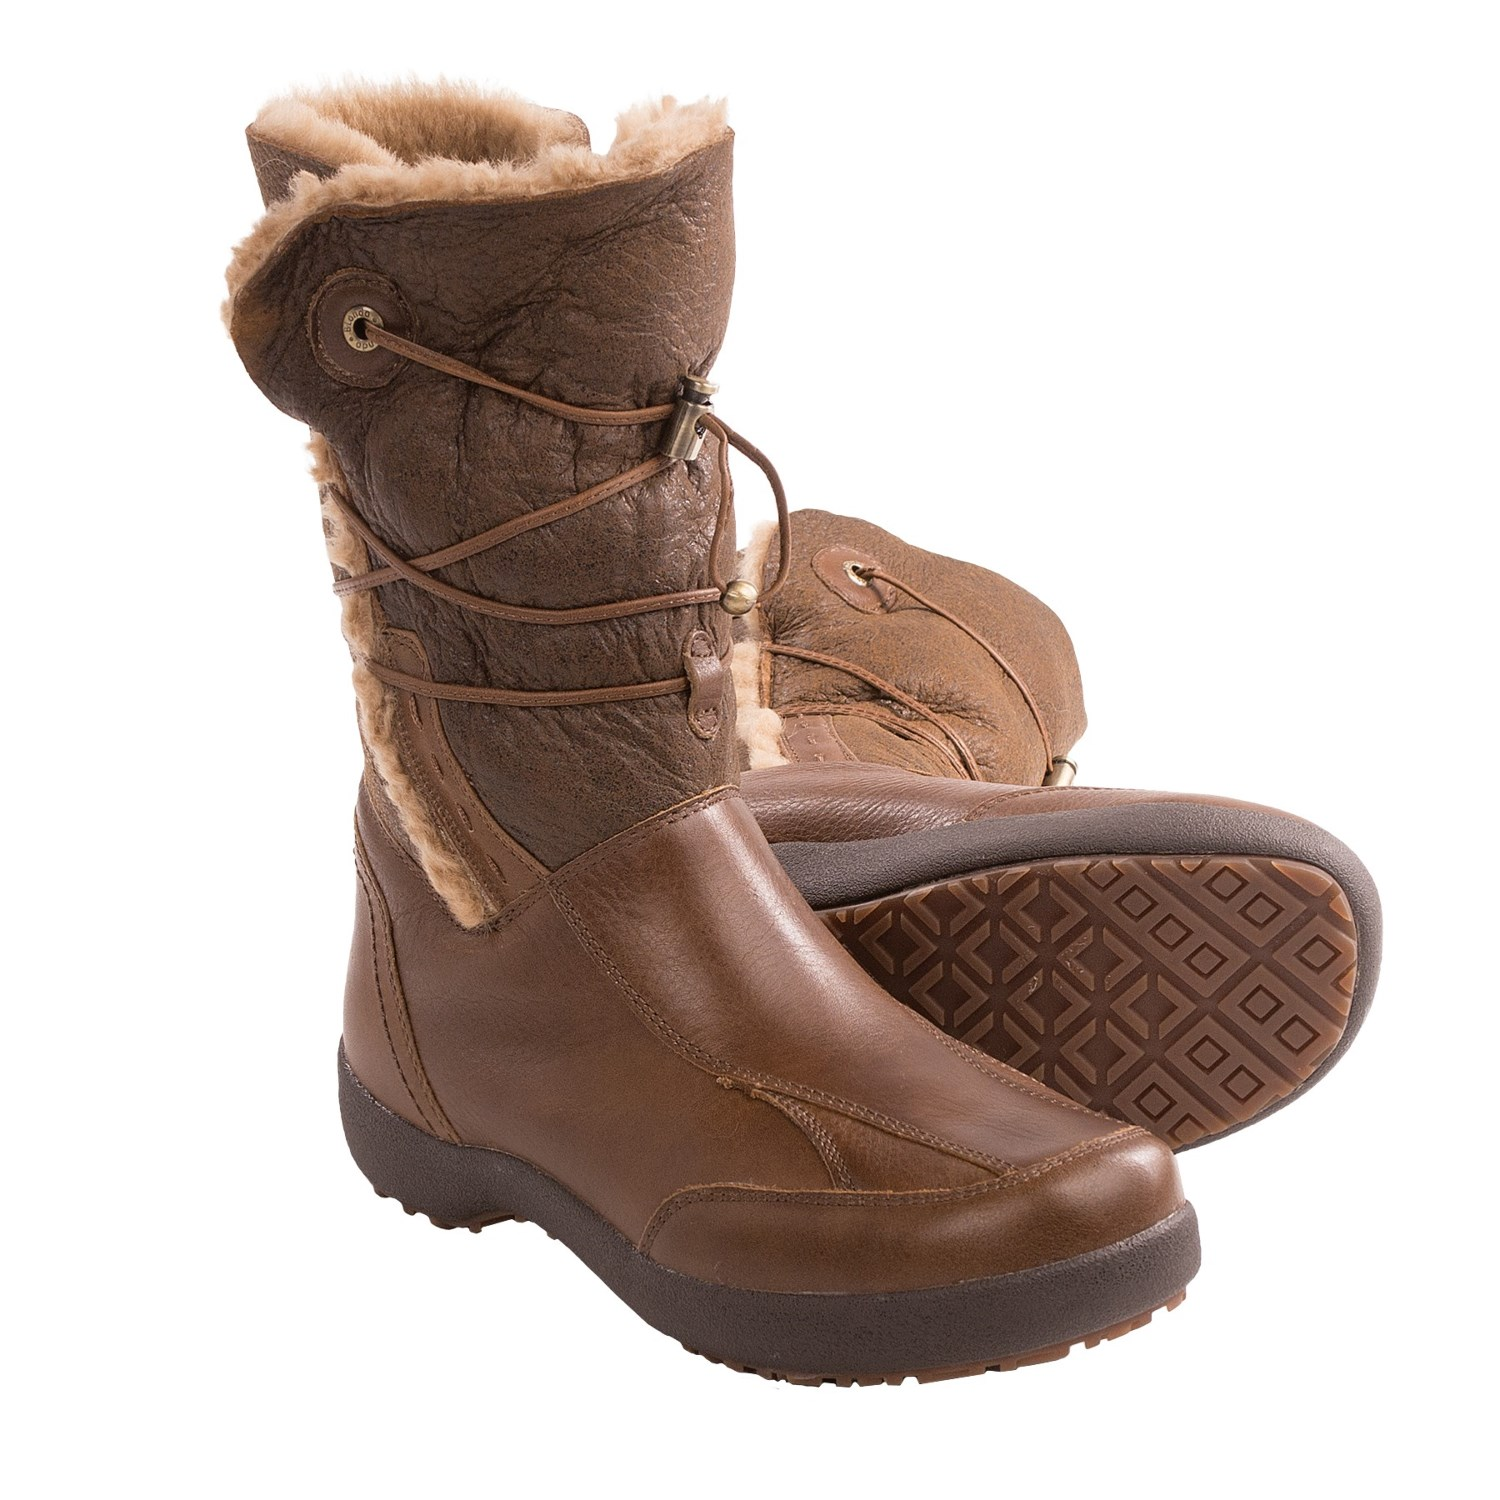 Blondo Waverly Boots Leather Wool Lined For Women In